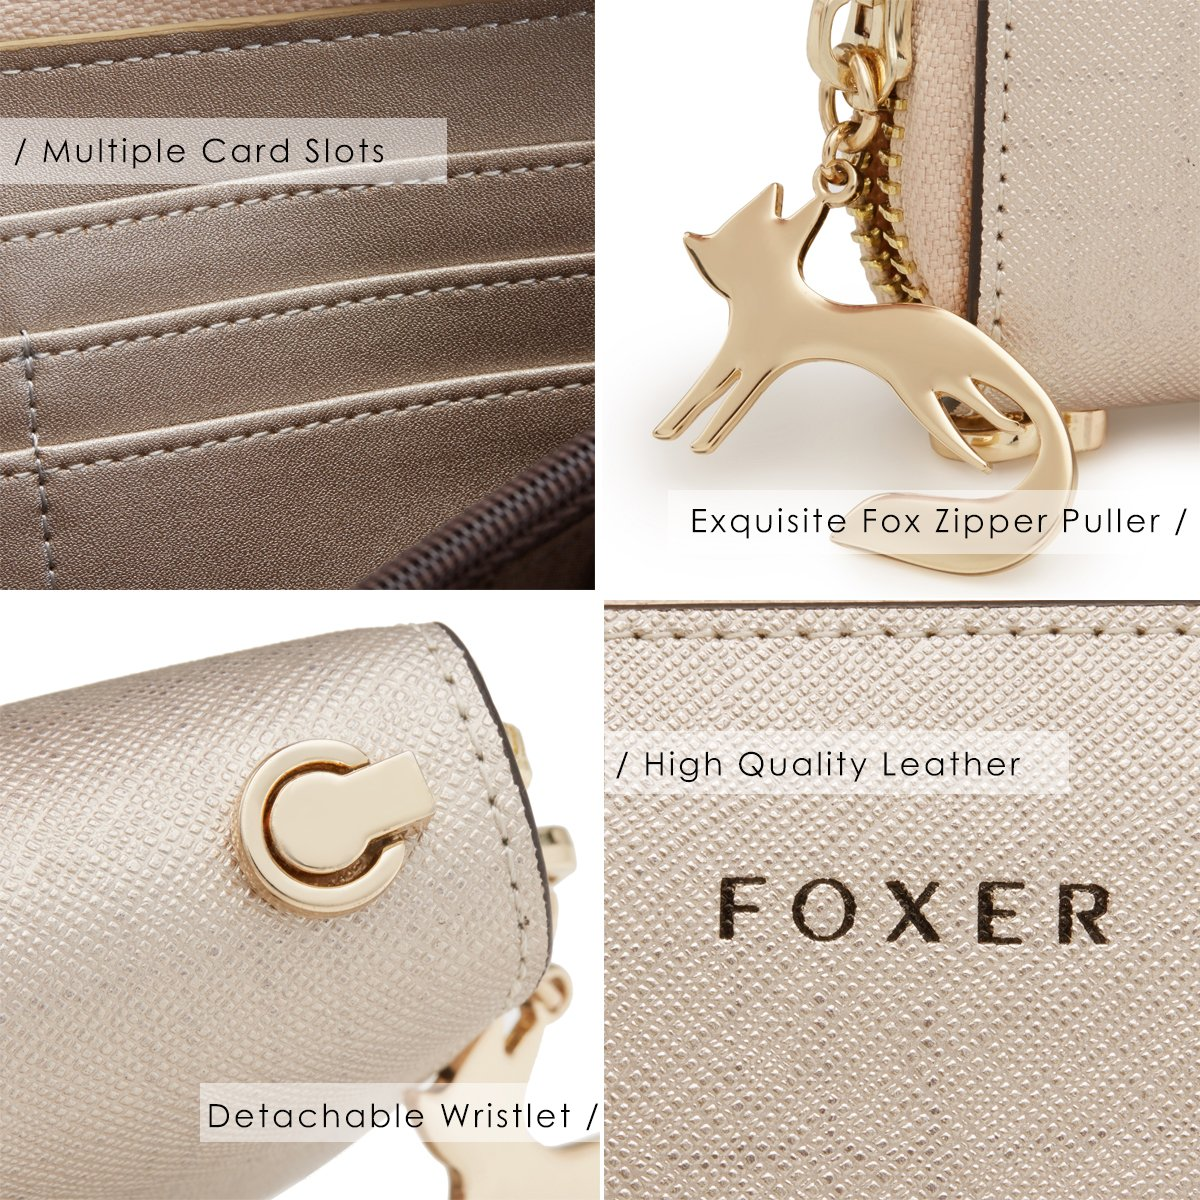 FOXER Women Leather Wallet Bifold Wallet Clutch Wallet with Wristlet (Gold) by FOXER (Image #4)